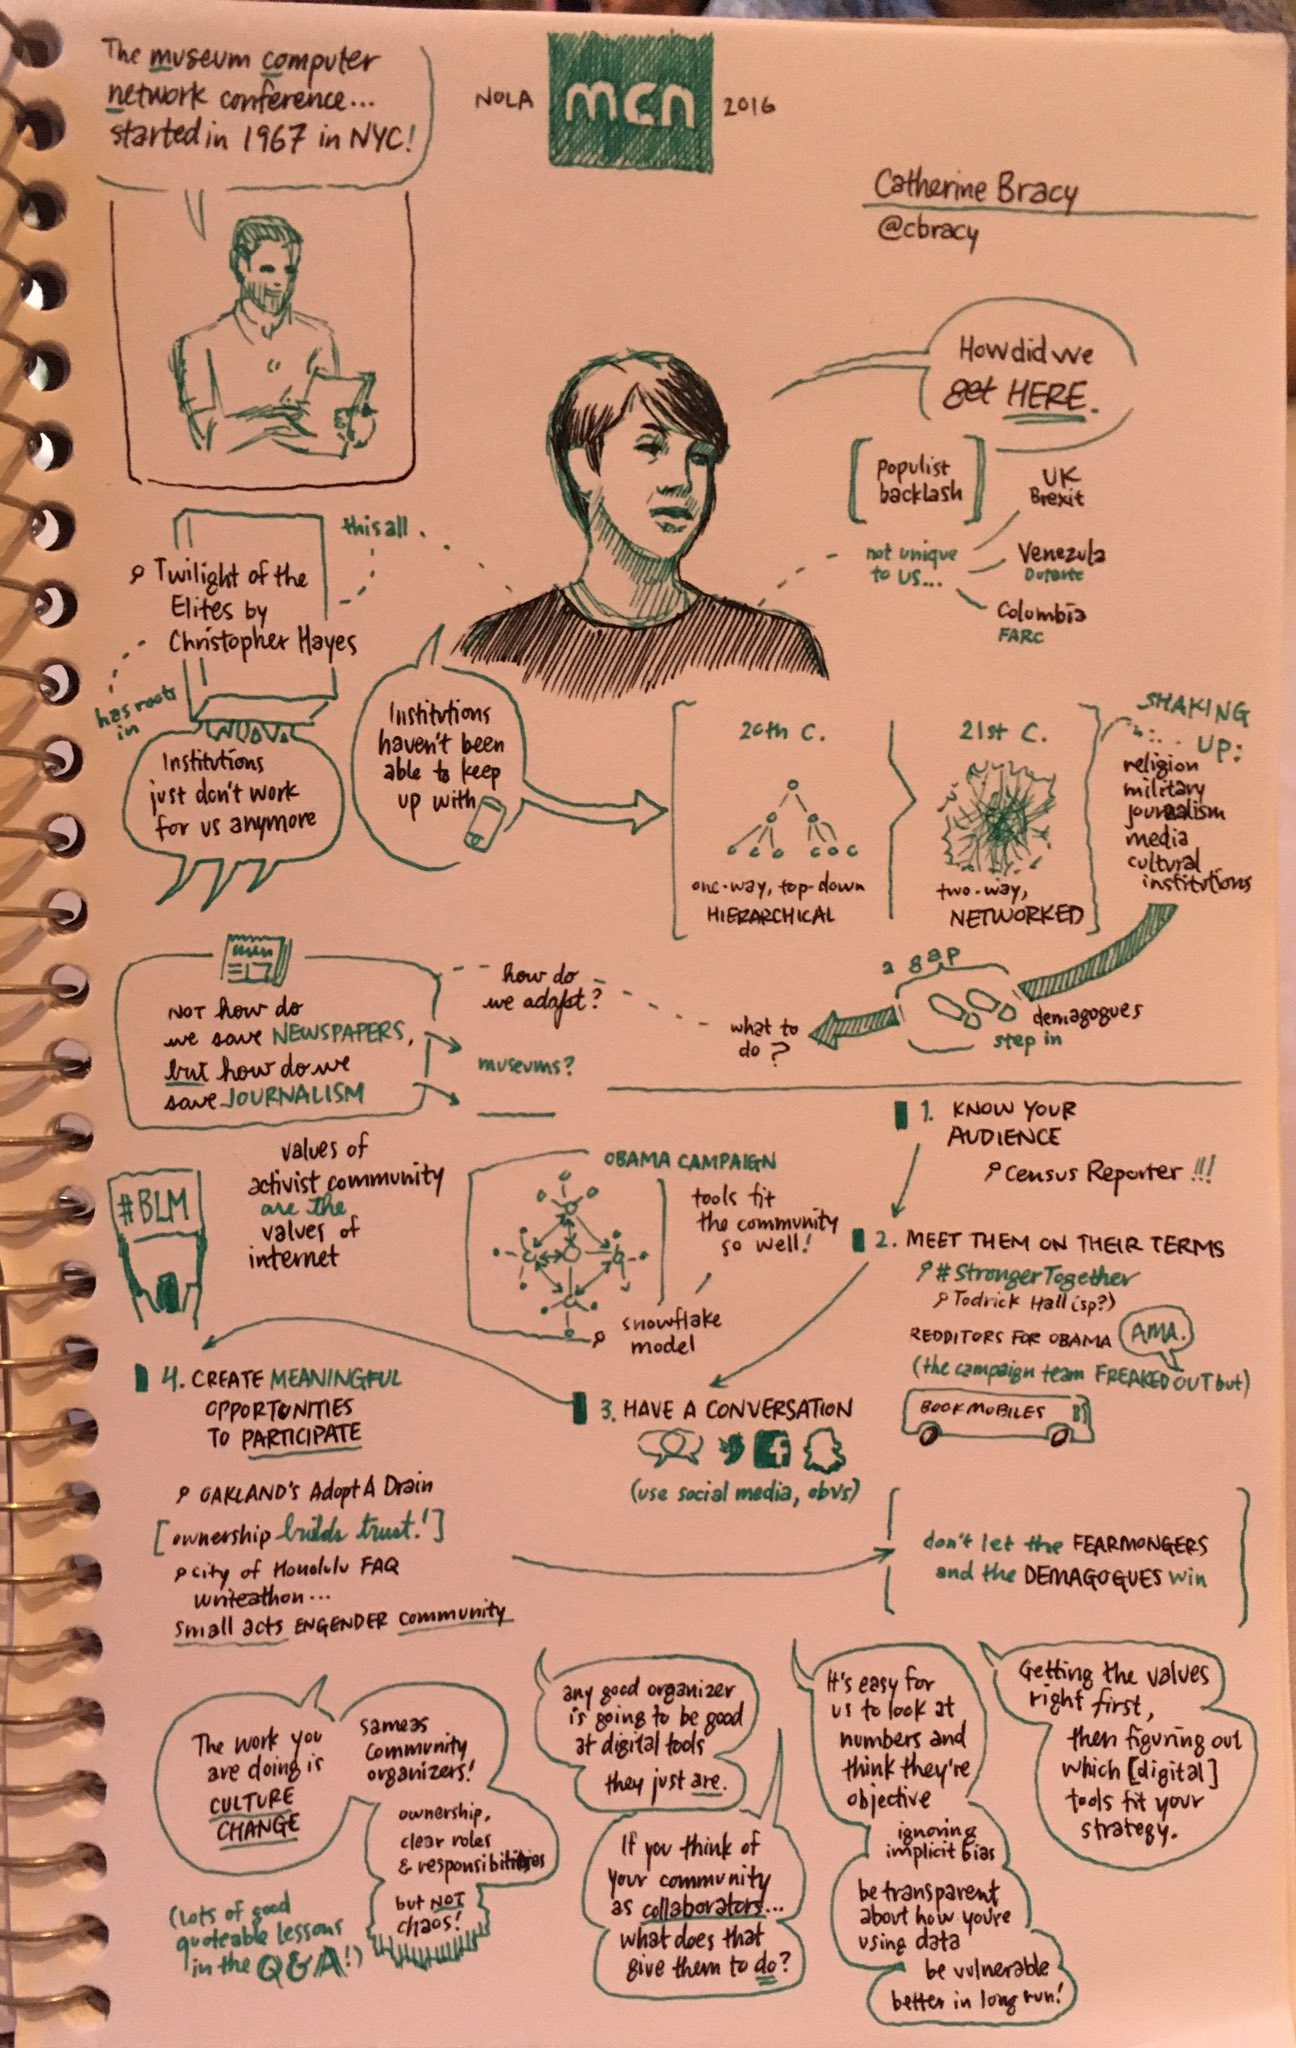 Sketchnotes of #MCN2016 keynote by @cbracy on community organizing lessons for cultural institutions. https://t.co/0DtJVCmIk0